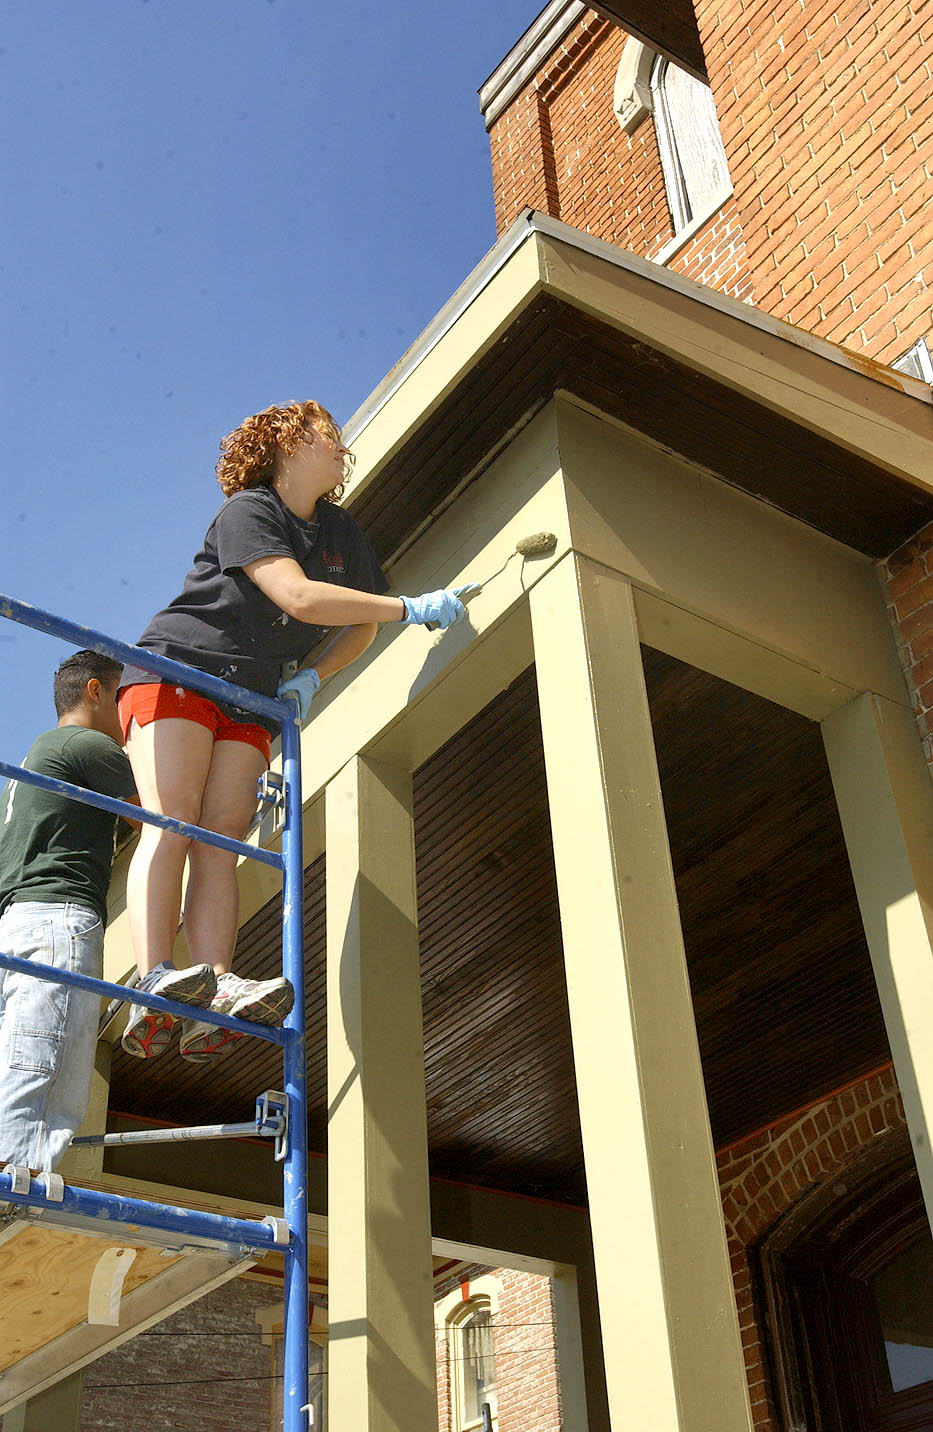 Student helping restore the 1880 Snyder House in the Bankers' Row Historic District, Logansport, Indiana